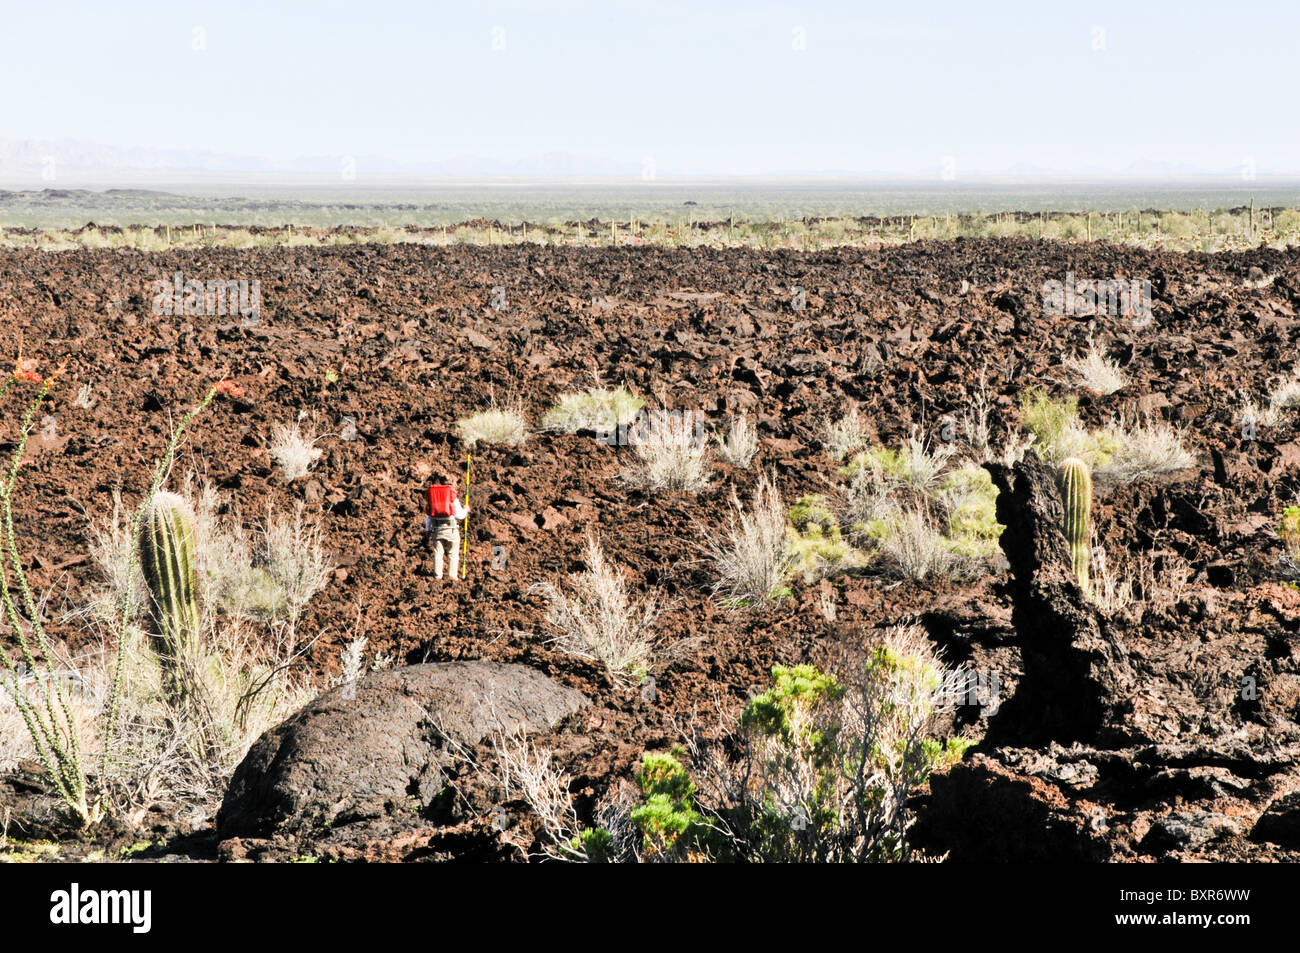 Geologist in lava field near Tecolote cinder cone, El Pinacate Biosphere Reserve, Sonora, Mexico - Stock Image